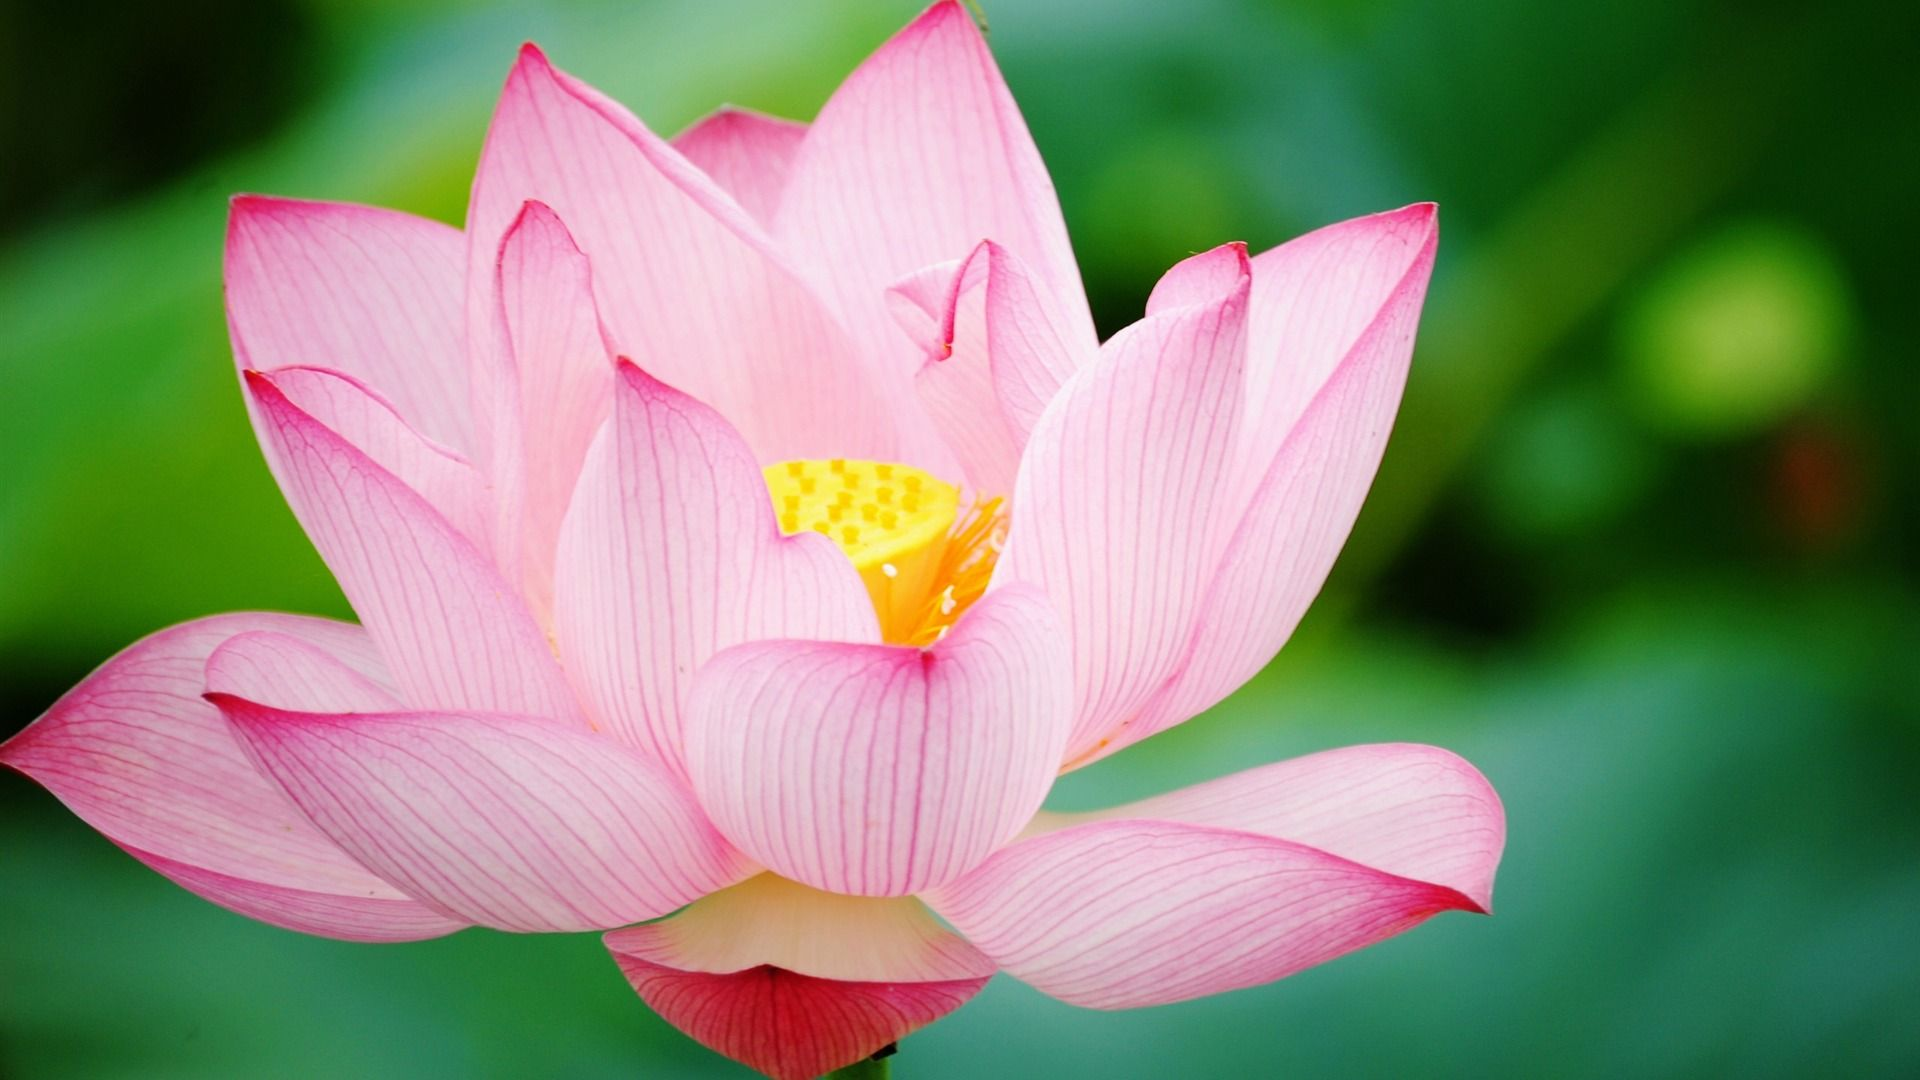 Pin By Dianna Smith On Floral Power Pinterest Lotus Flowers And